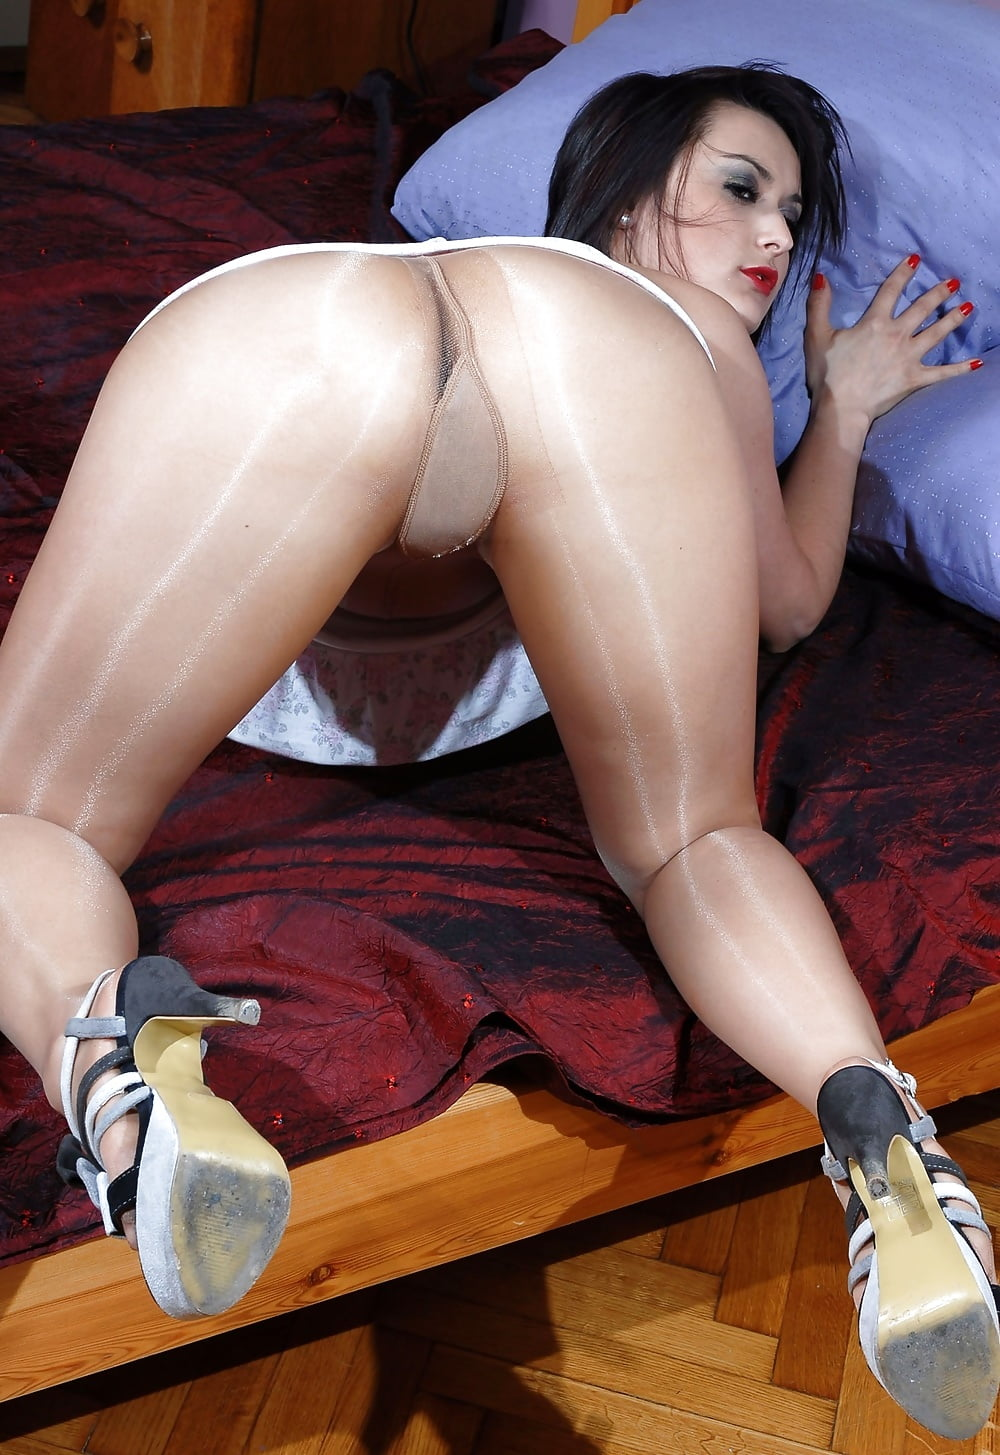 pantyhose-pantyhose-pantyhose-sex-panty-hose-xxx-porn-on-demand